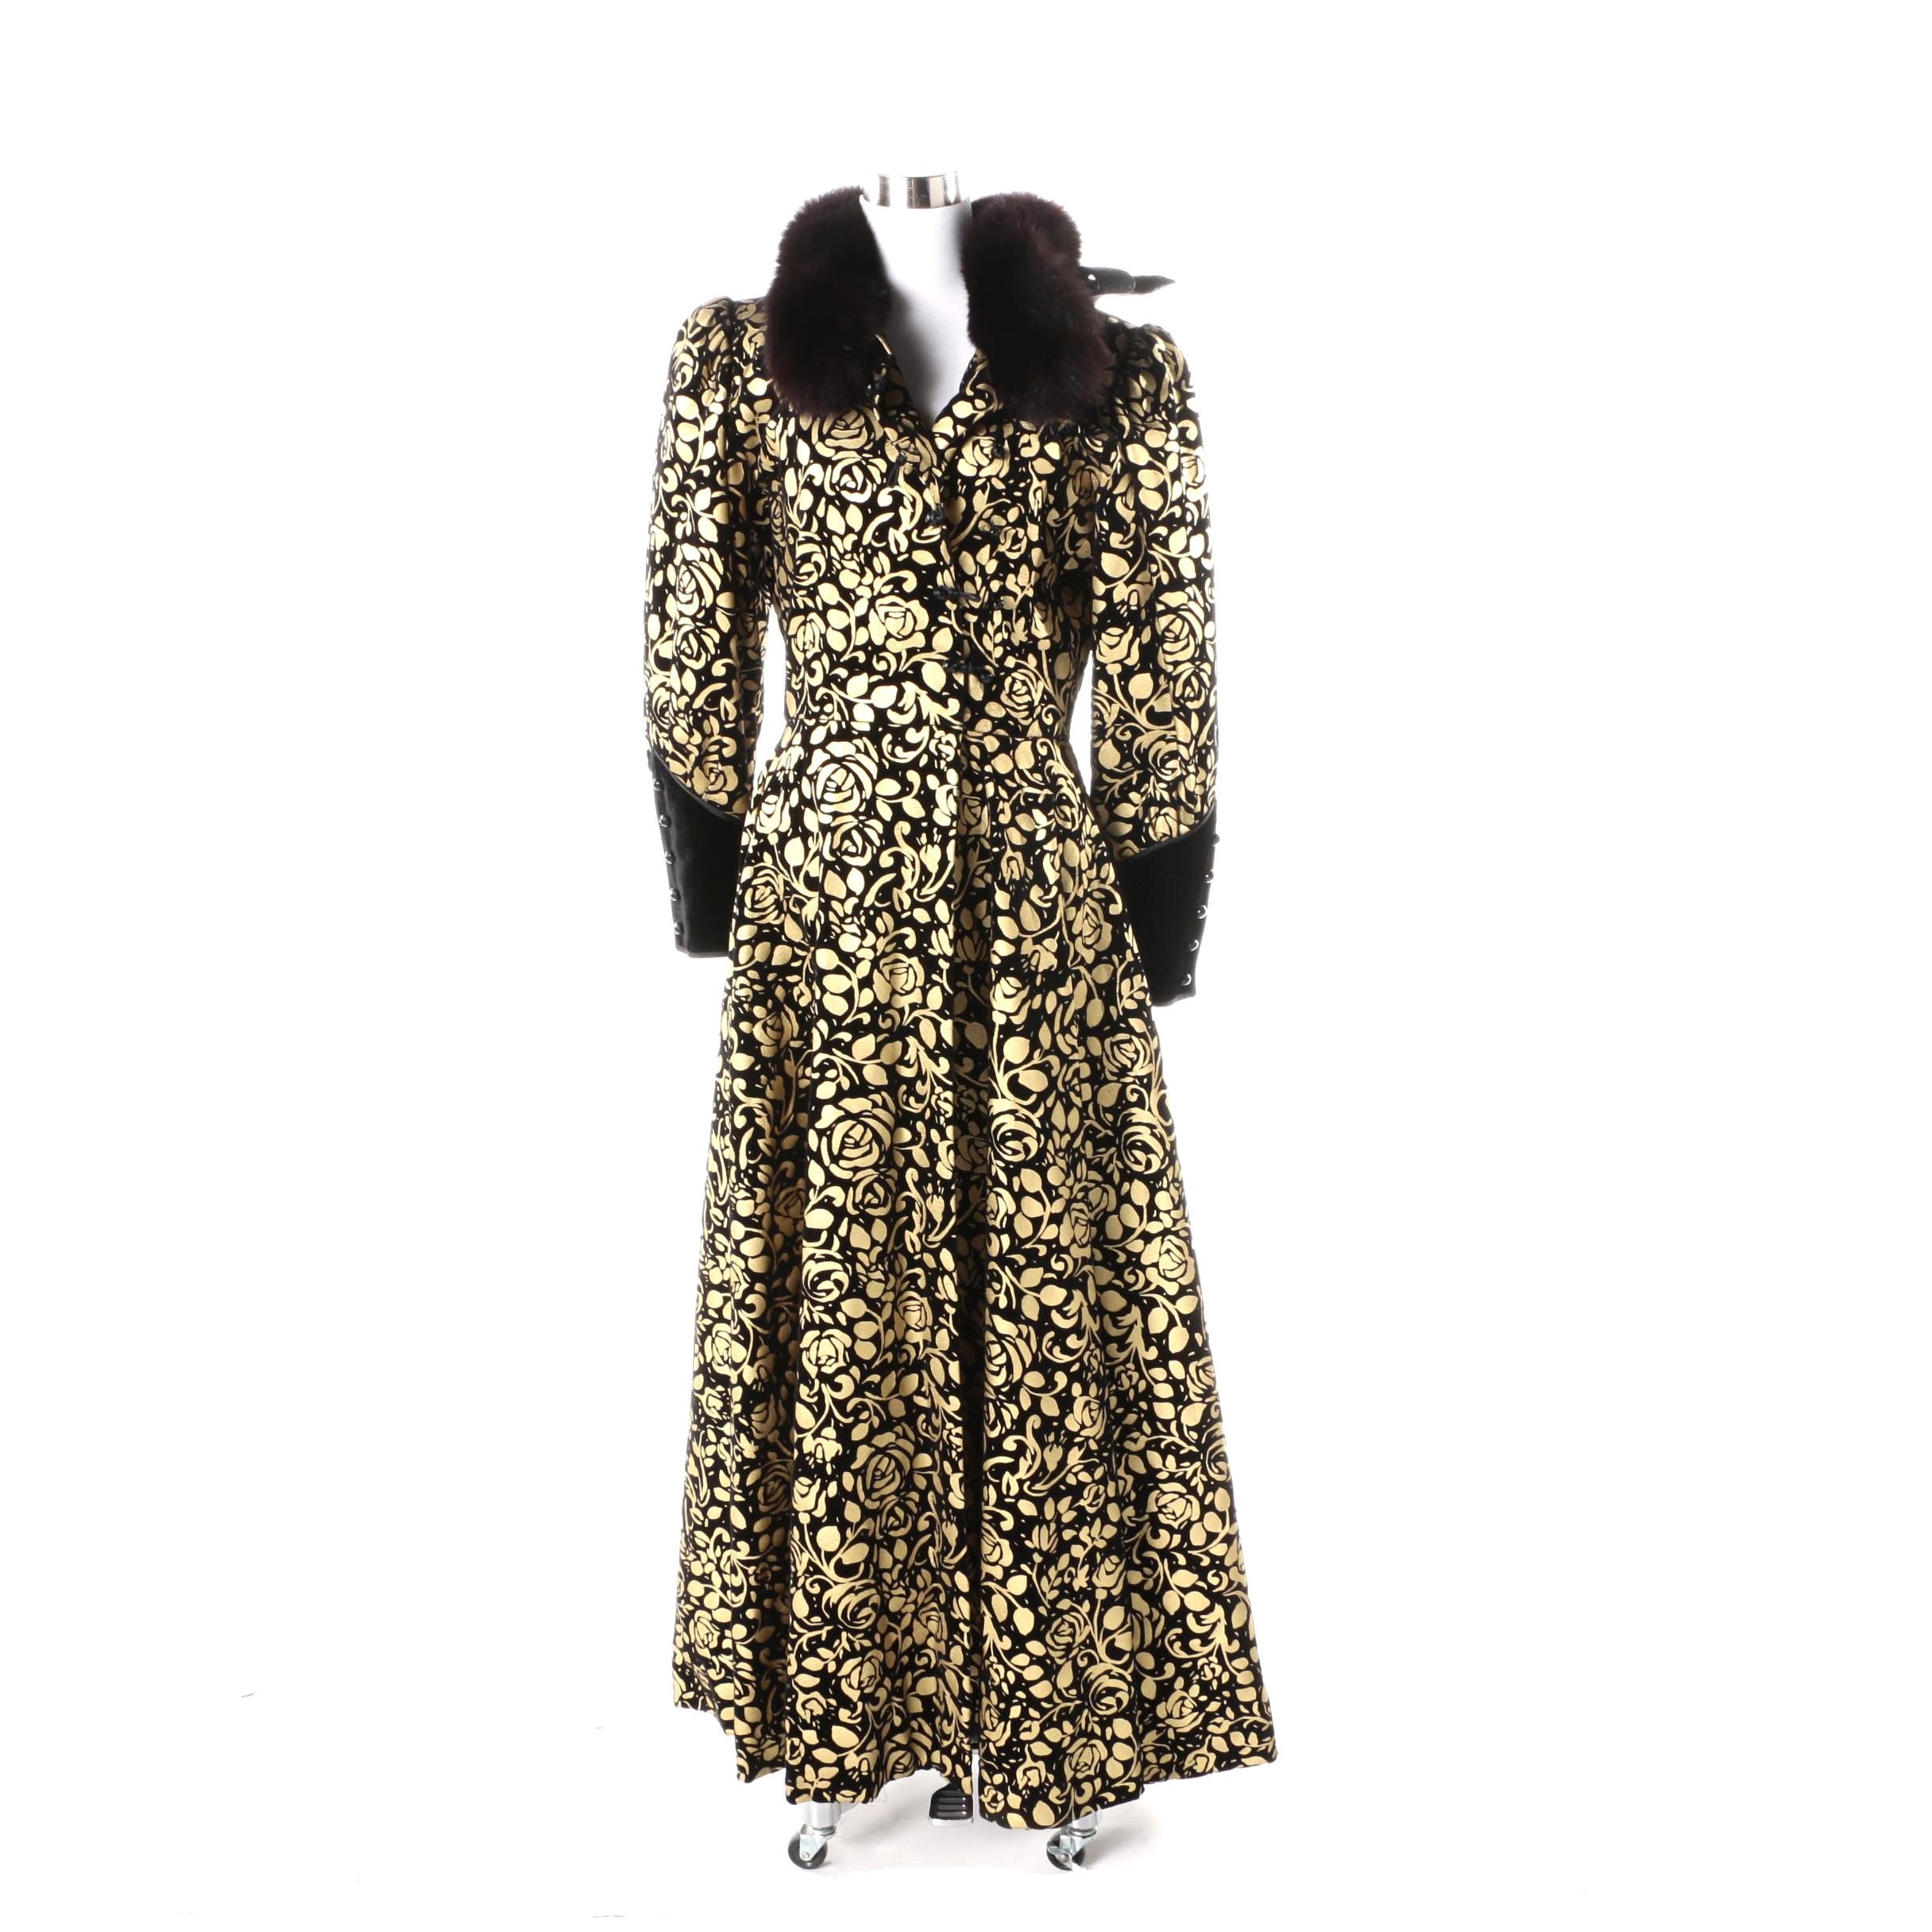 Nina Ricci Haute Boutique Velvet Coat with Fox Fur Collar